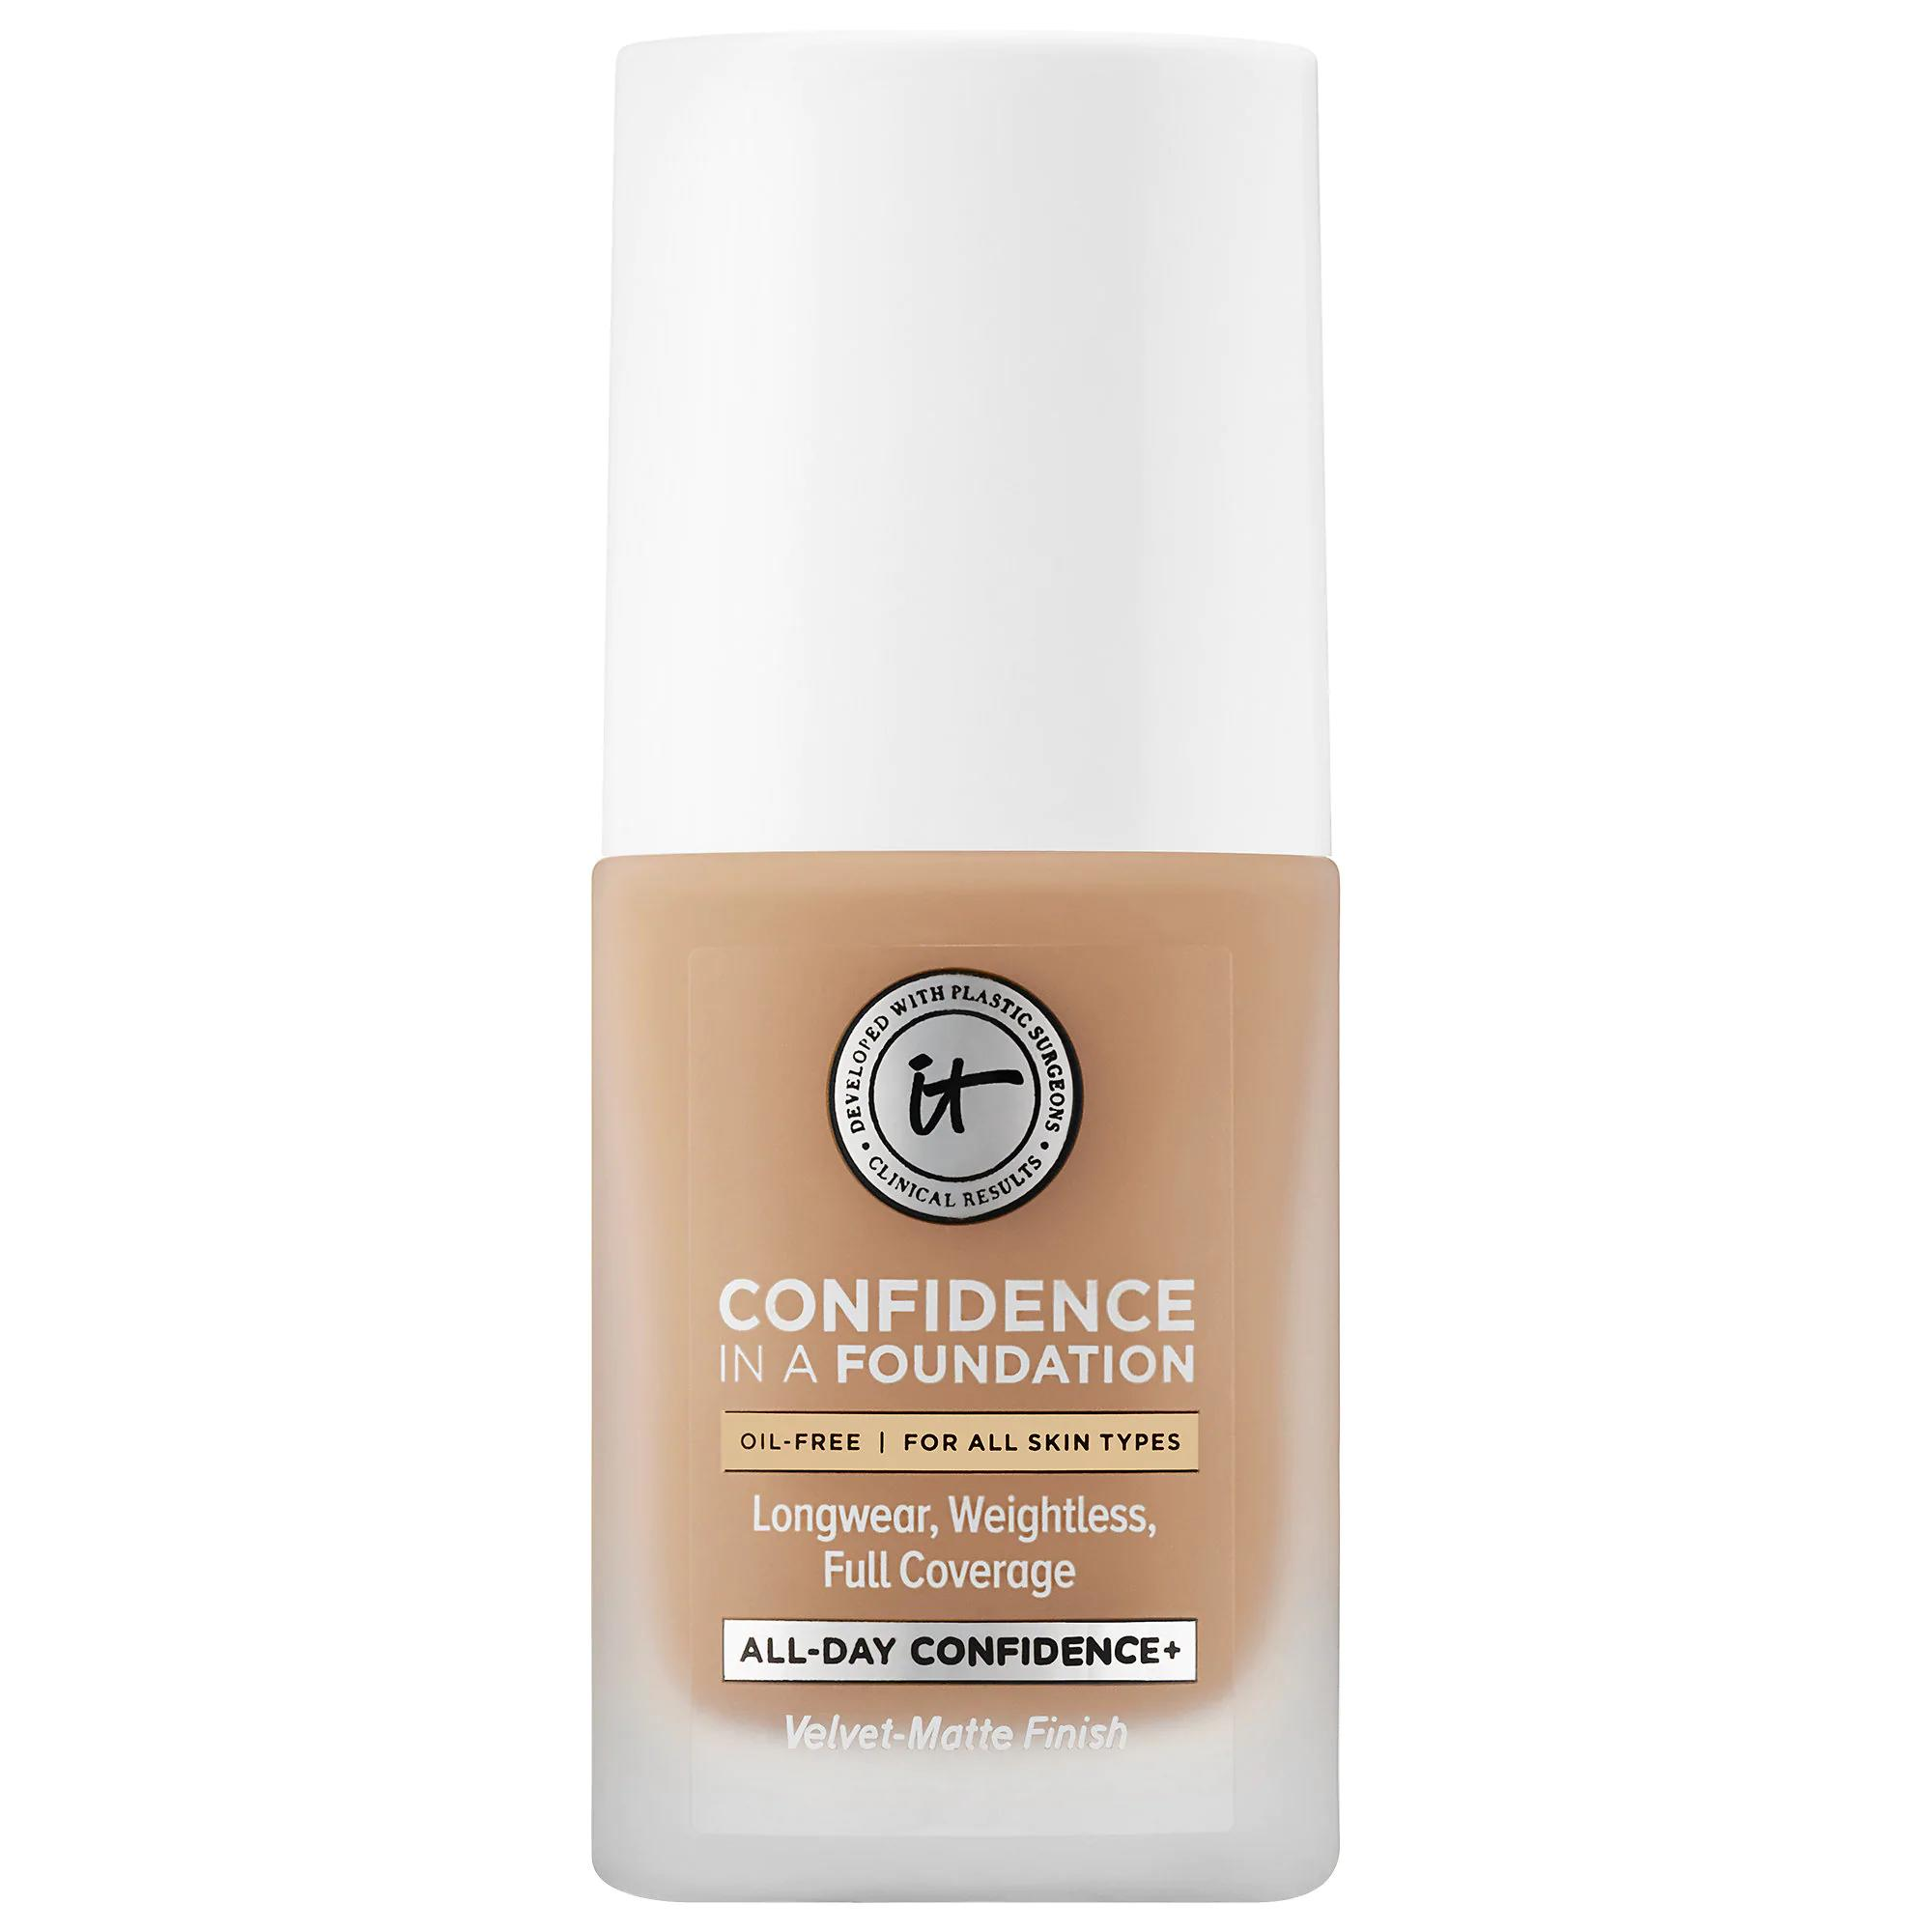 IT Cosmetics Confidence in a Foundation Tan Beige 300